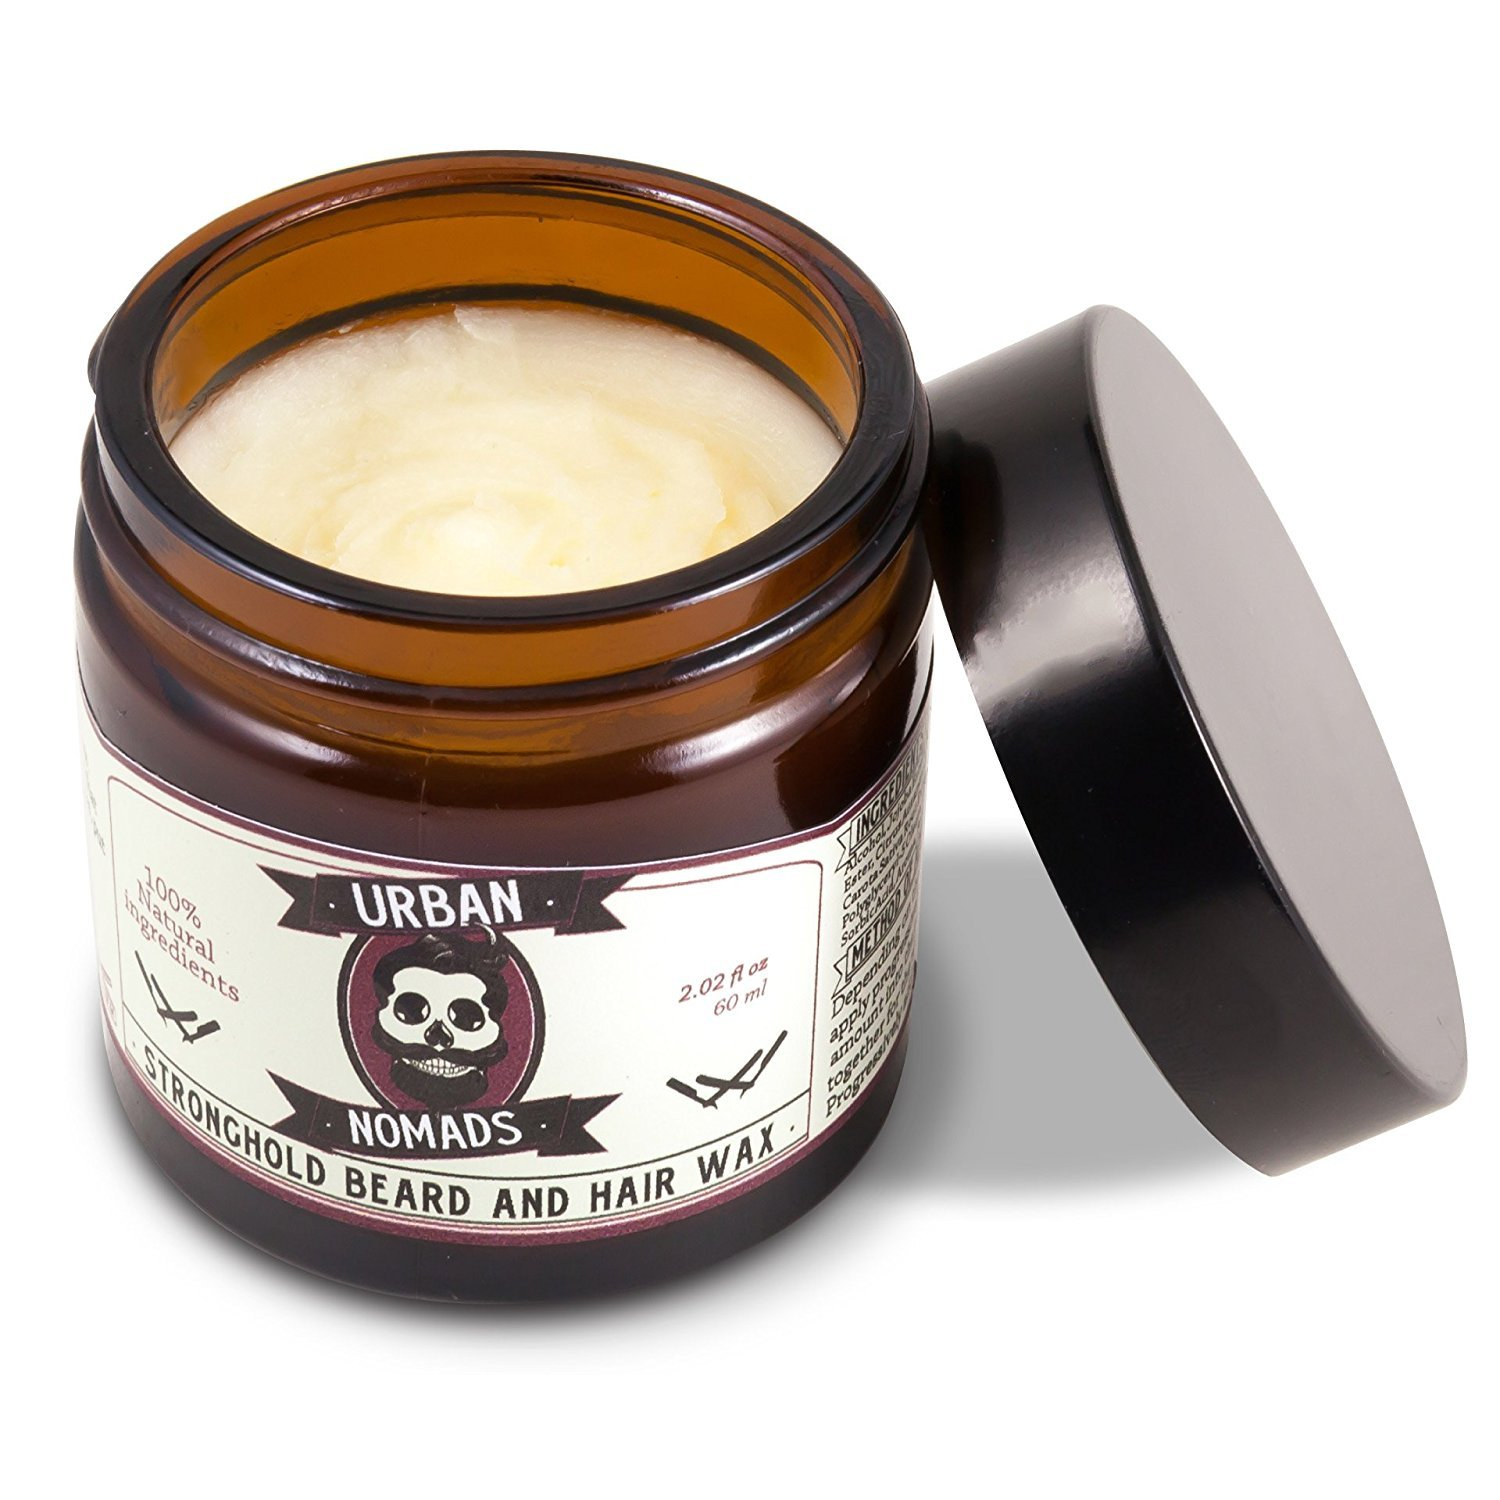 URBAN NOMADS Best Beard Balm & Wax